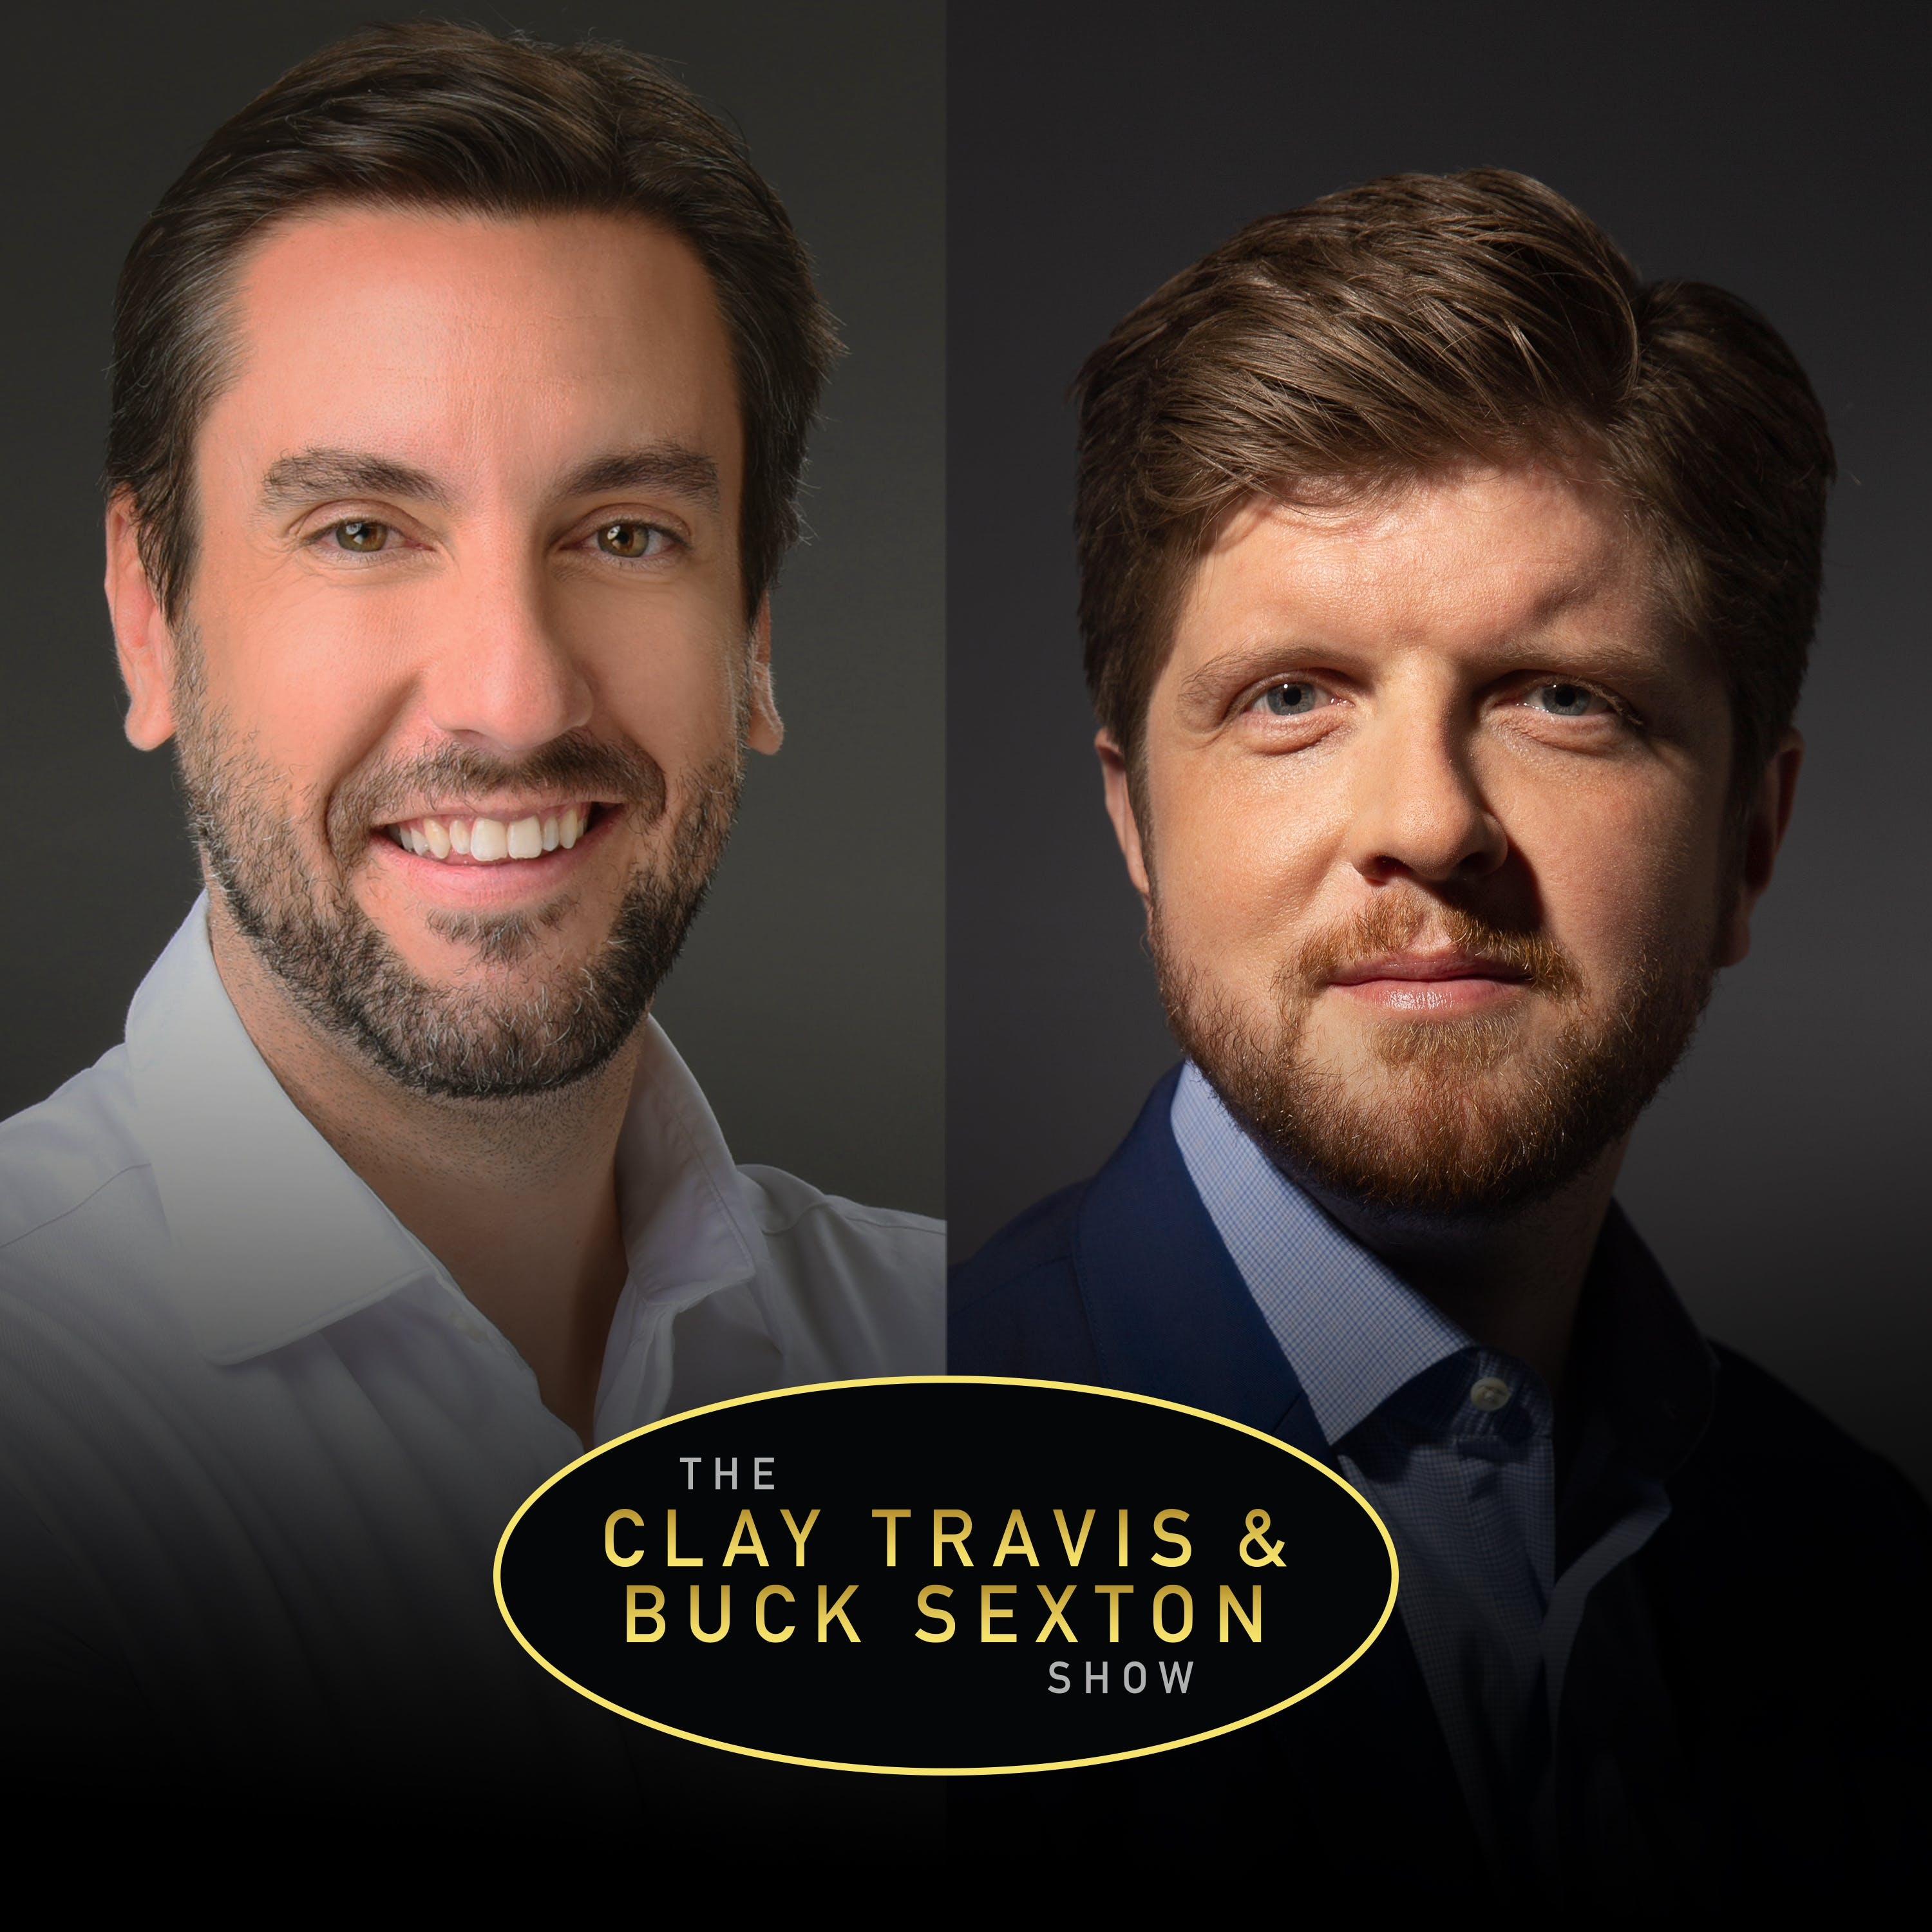 Clay Travis and Buck Sexton Show H1 – Jul 30 2021